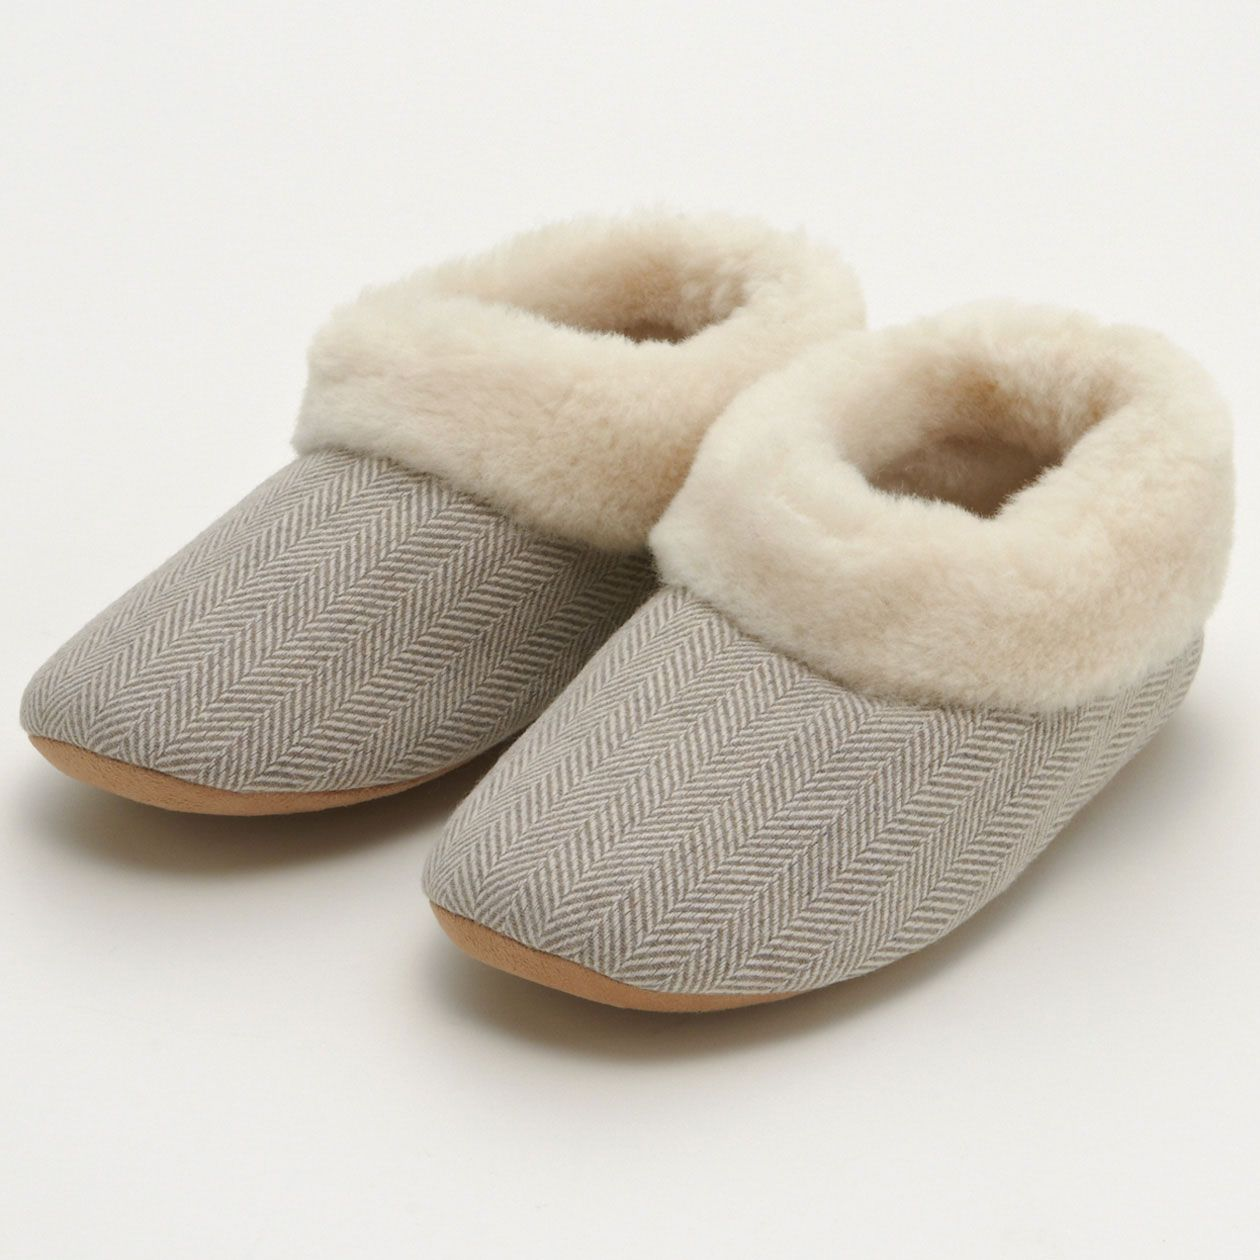 Herringbone Pattern Slippers - Beige MUJI